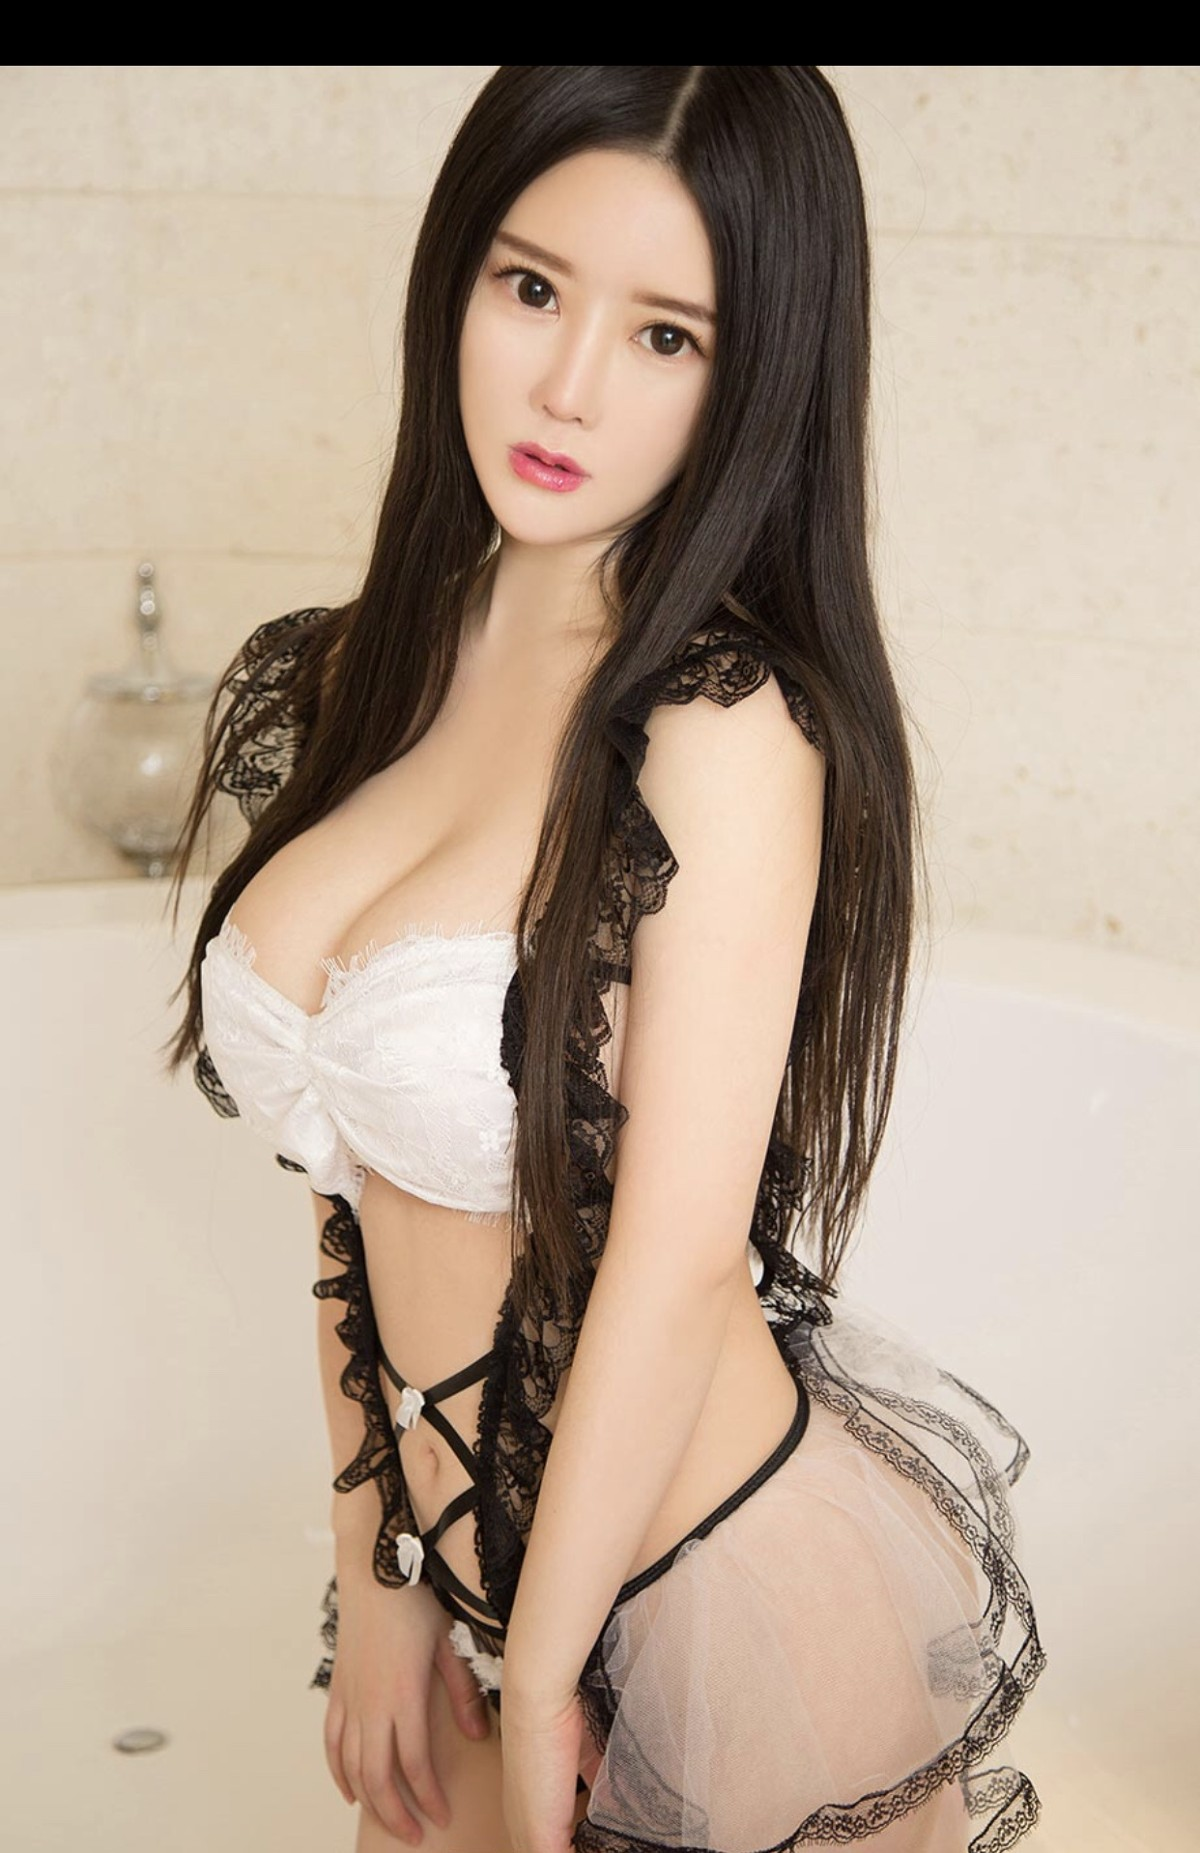 escort in hong kong, female escort in hongkong, female escort